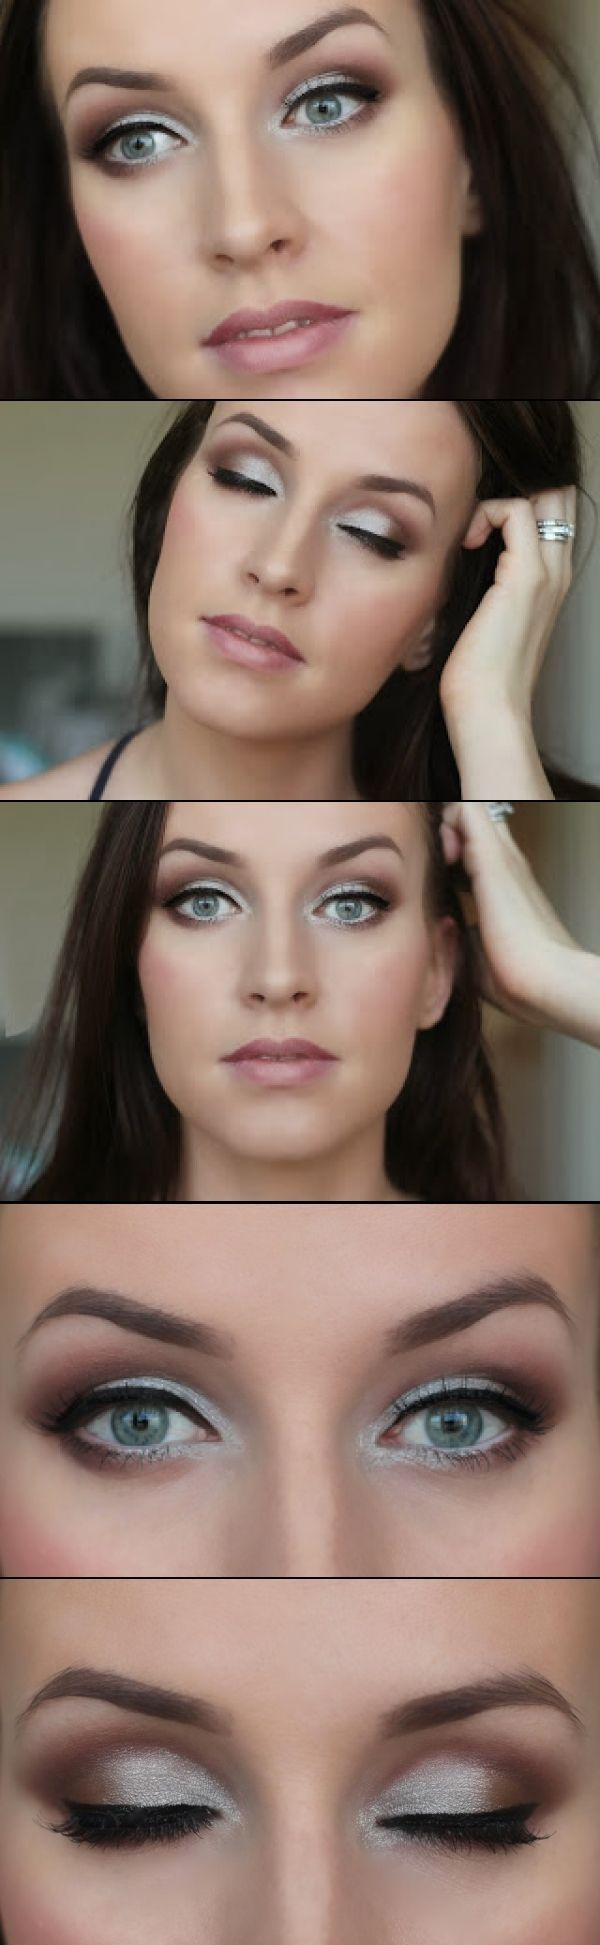 Best #makeup tips and #ideas for your hot date http://www.everydaynewfashions.com/